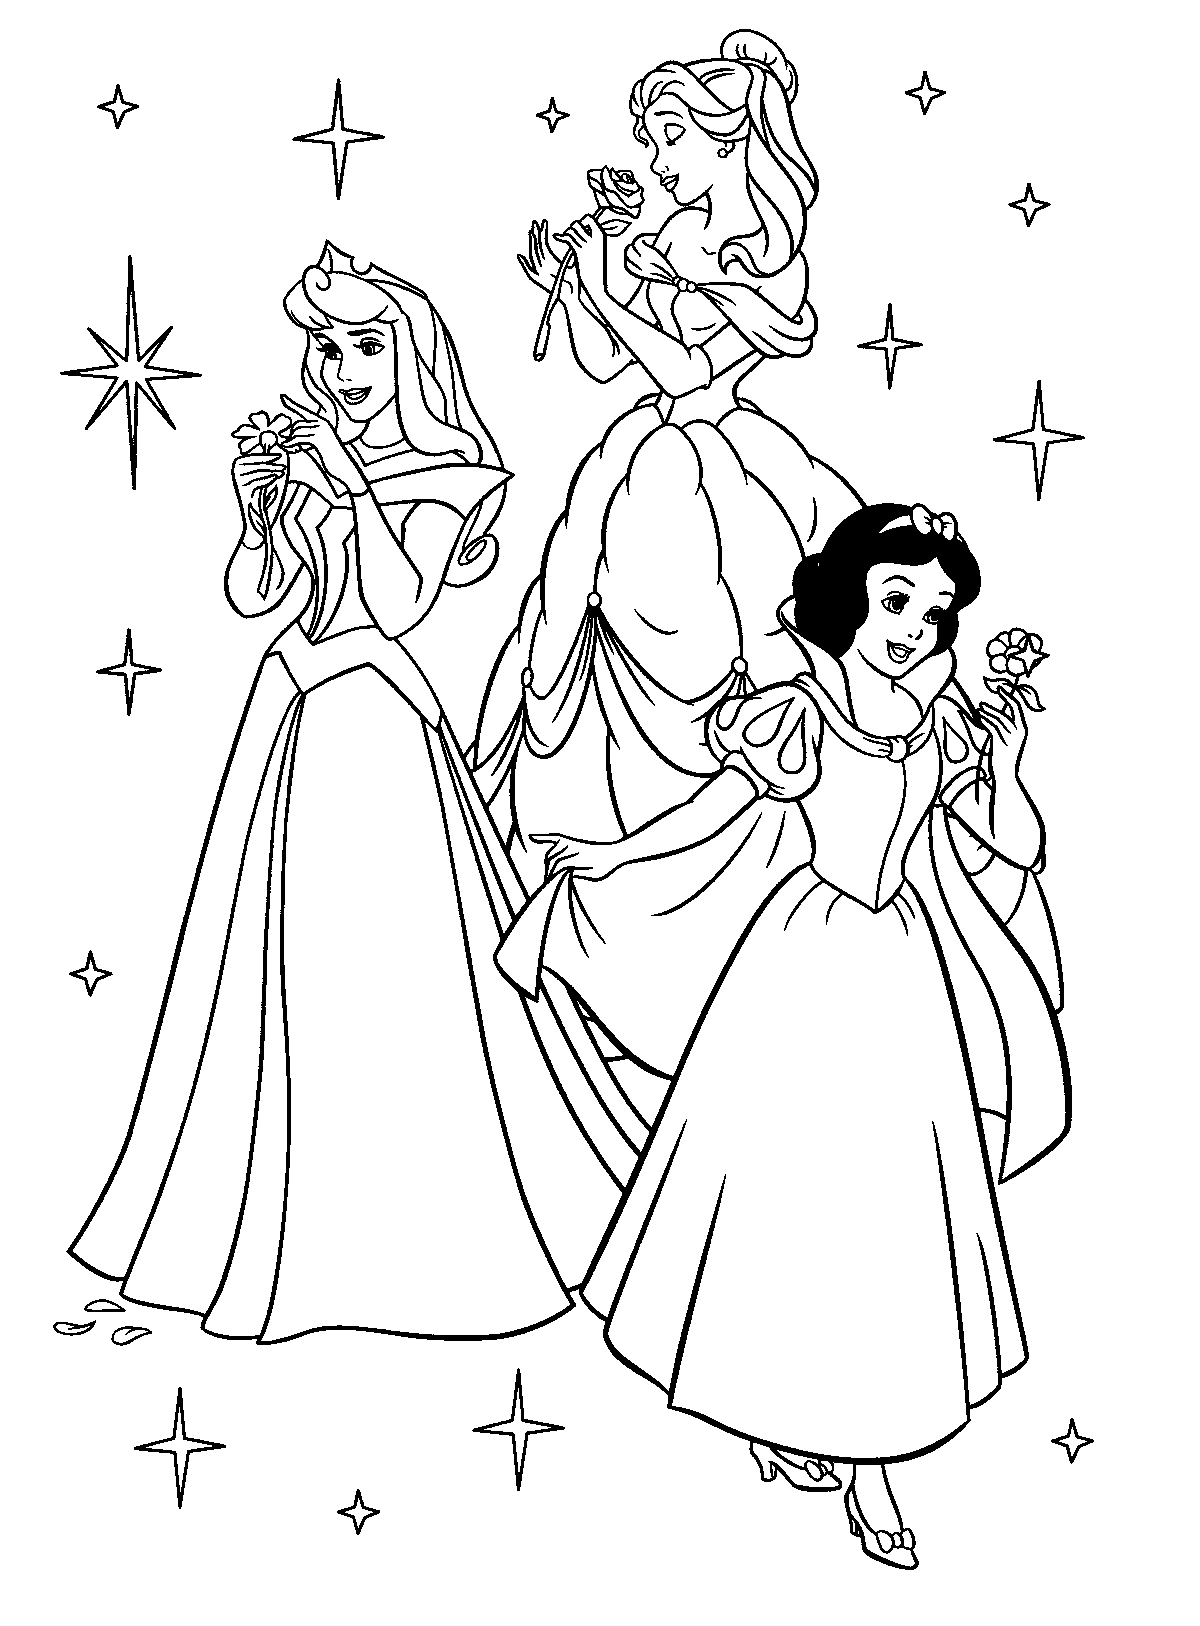 Princess Coloring Pages Spot : Princess coloring pages kids